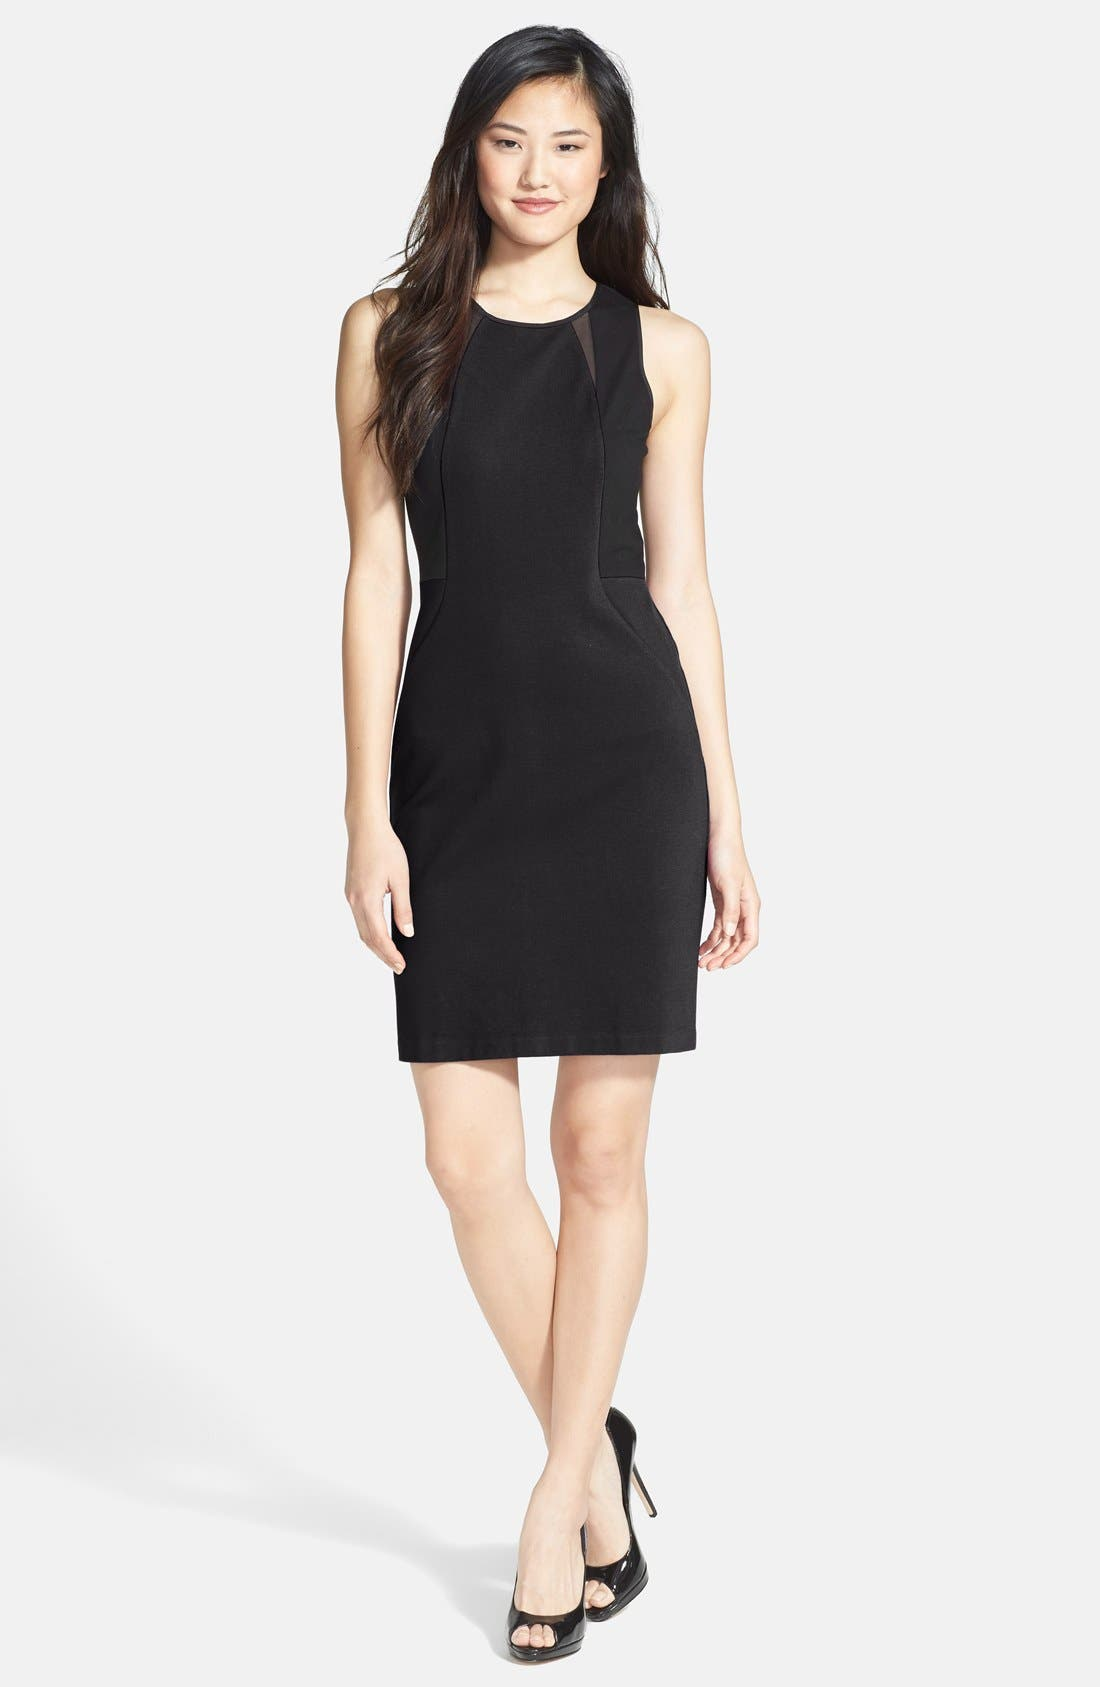 Alternate Image 1 Selected - Kenneth Cole New York 'Irene' Colorblock Dress (Petite)